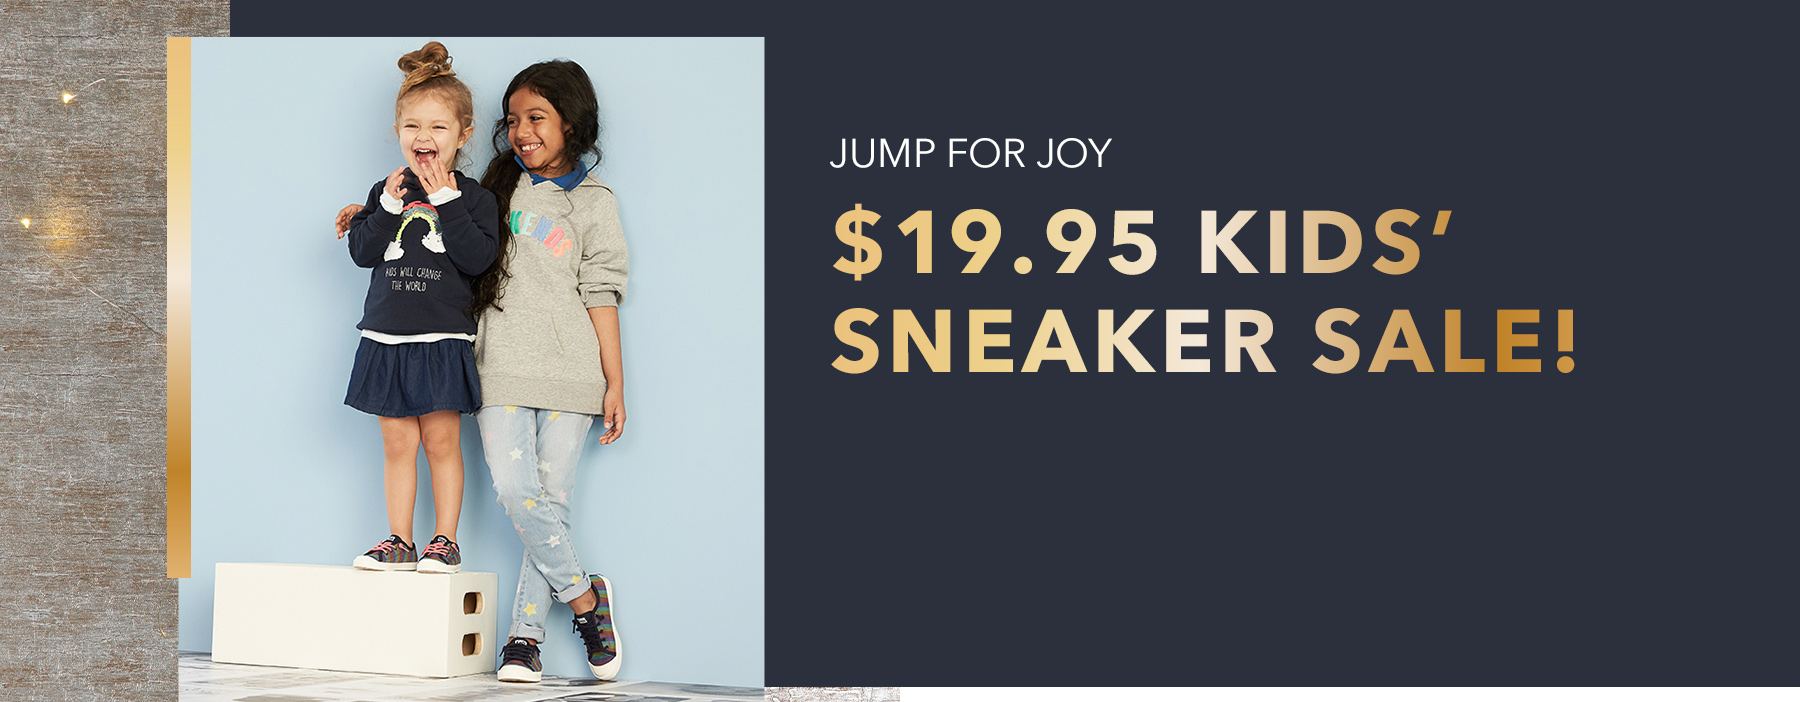 Jump for joy. $19.95 kids' sneaker sale.